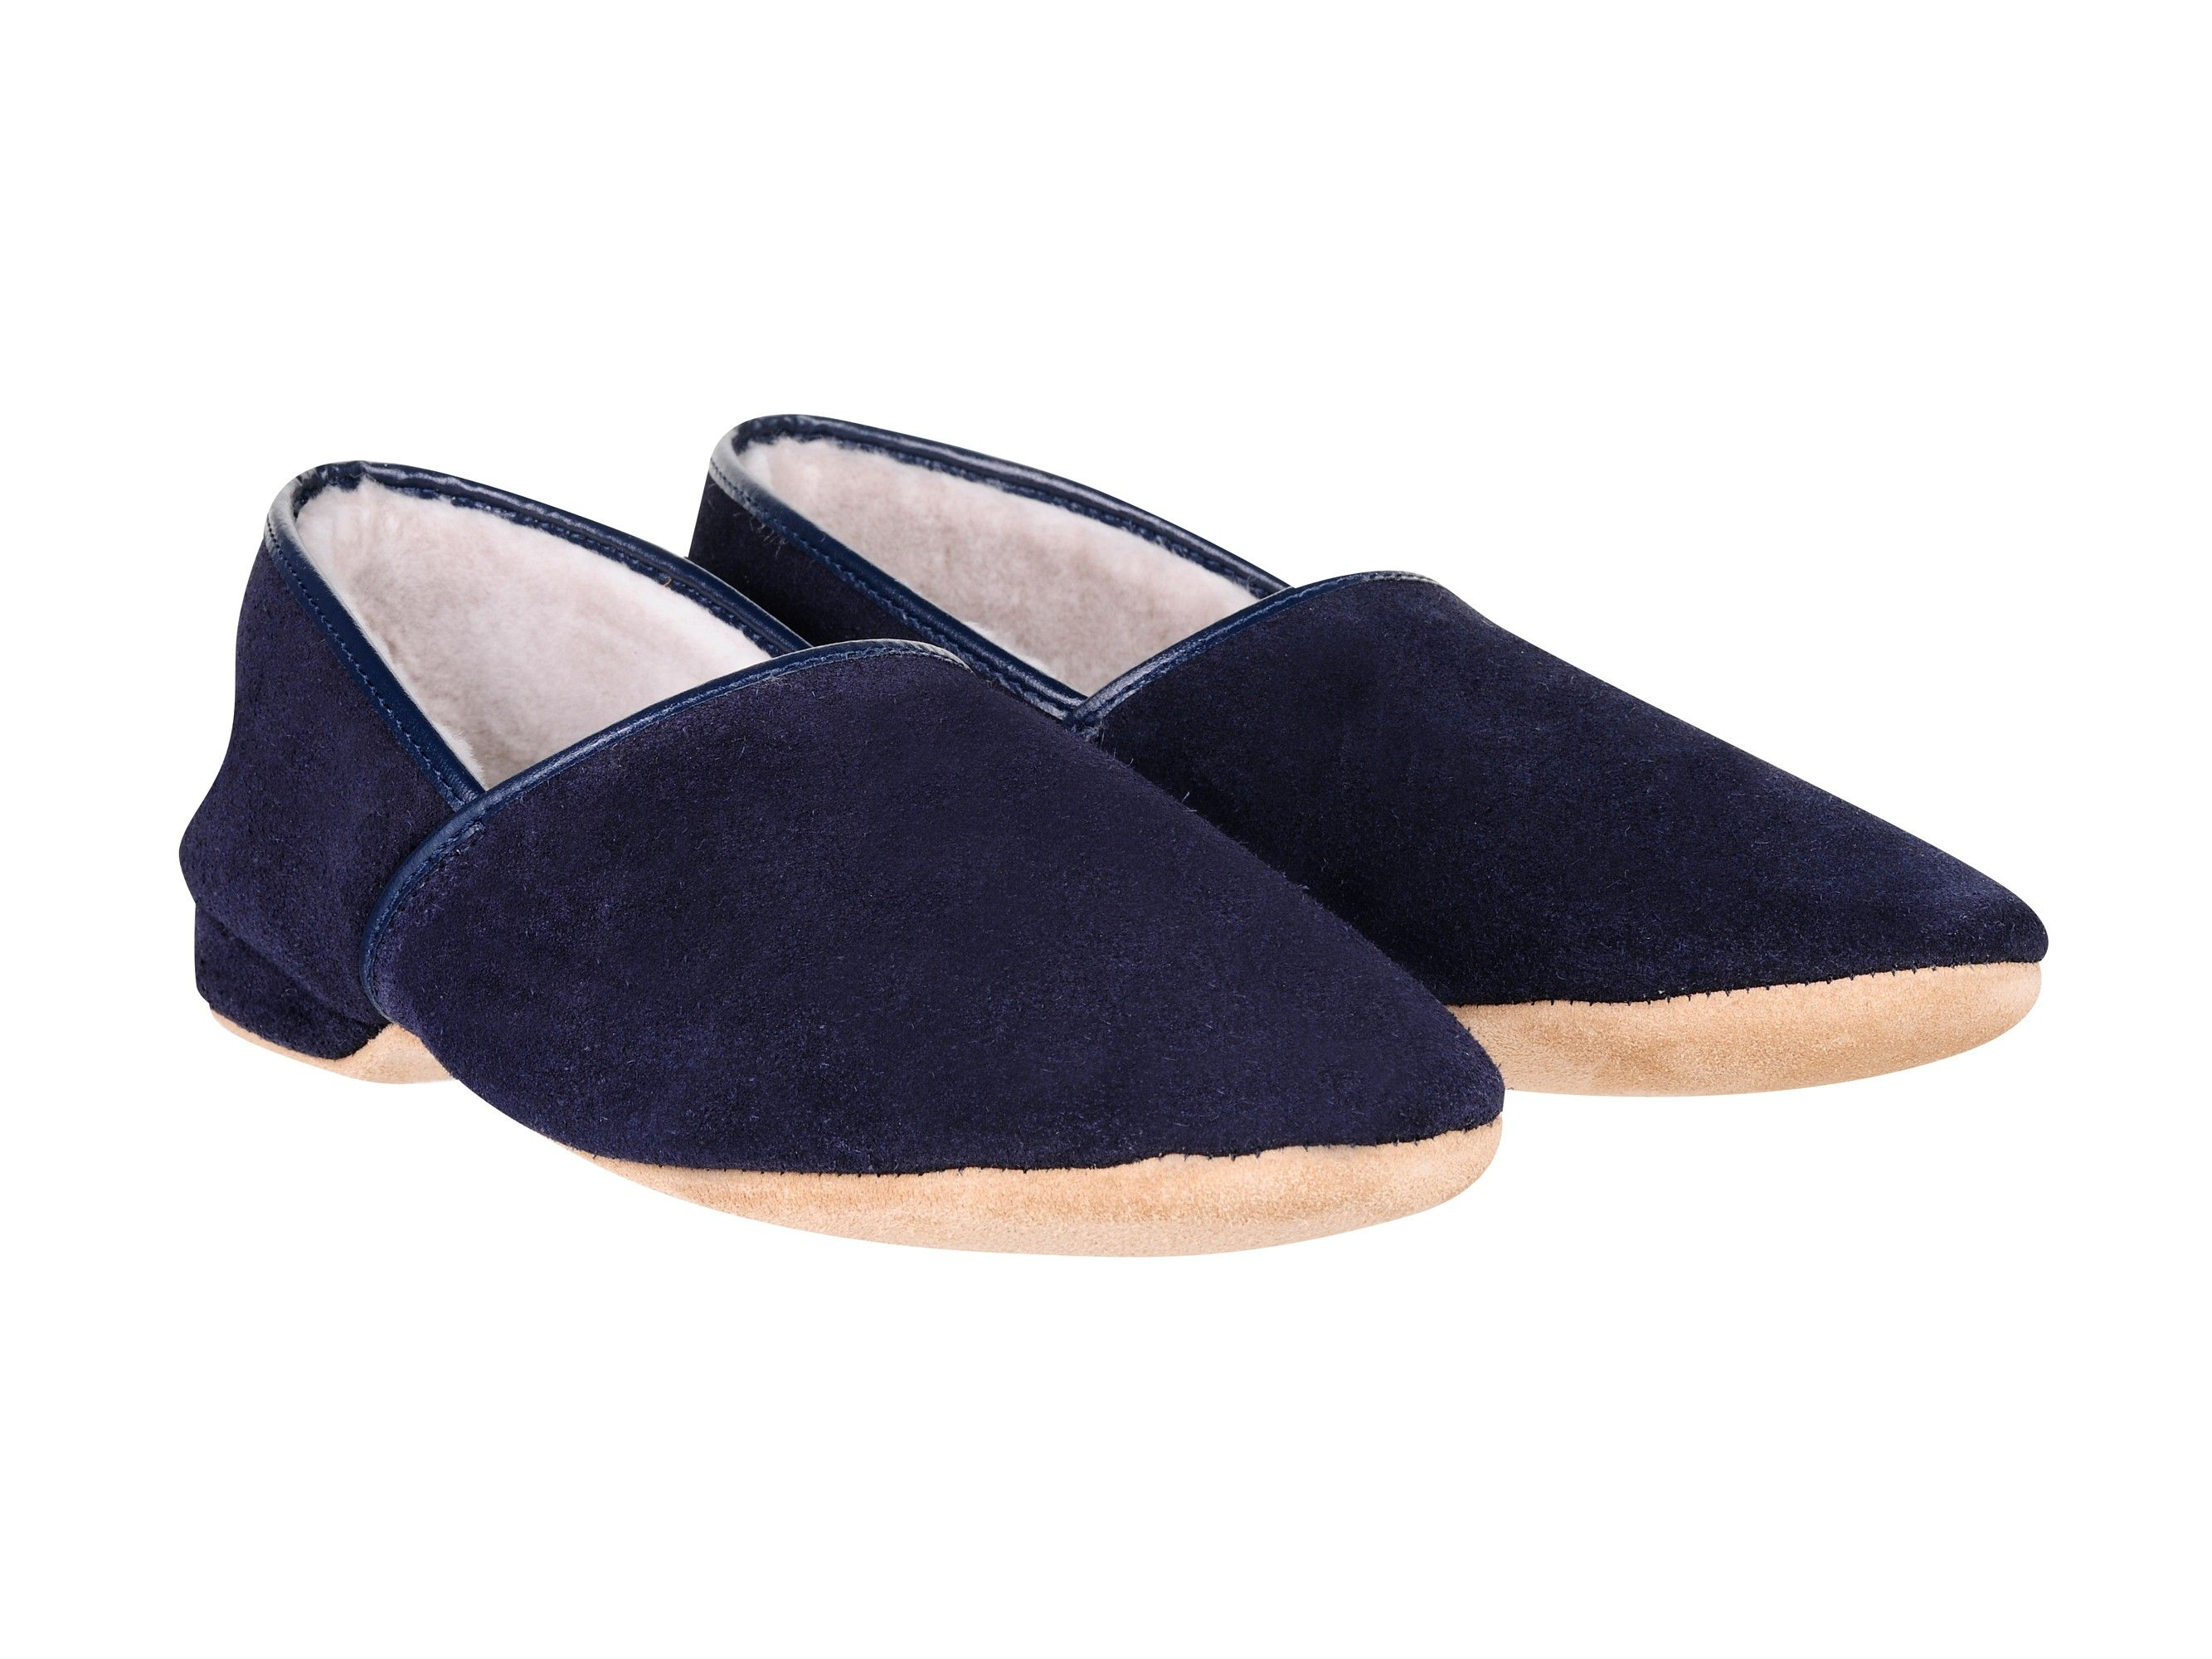 Arthur S Slippers In The Beginning Because He Is A Schlub Navy Slippers Mens Slippers Slippers